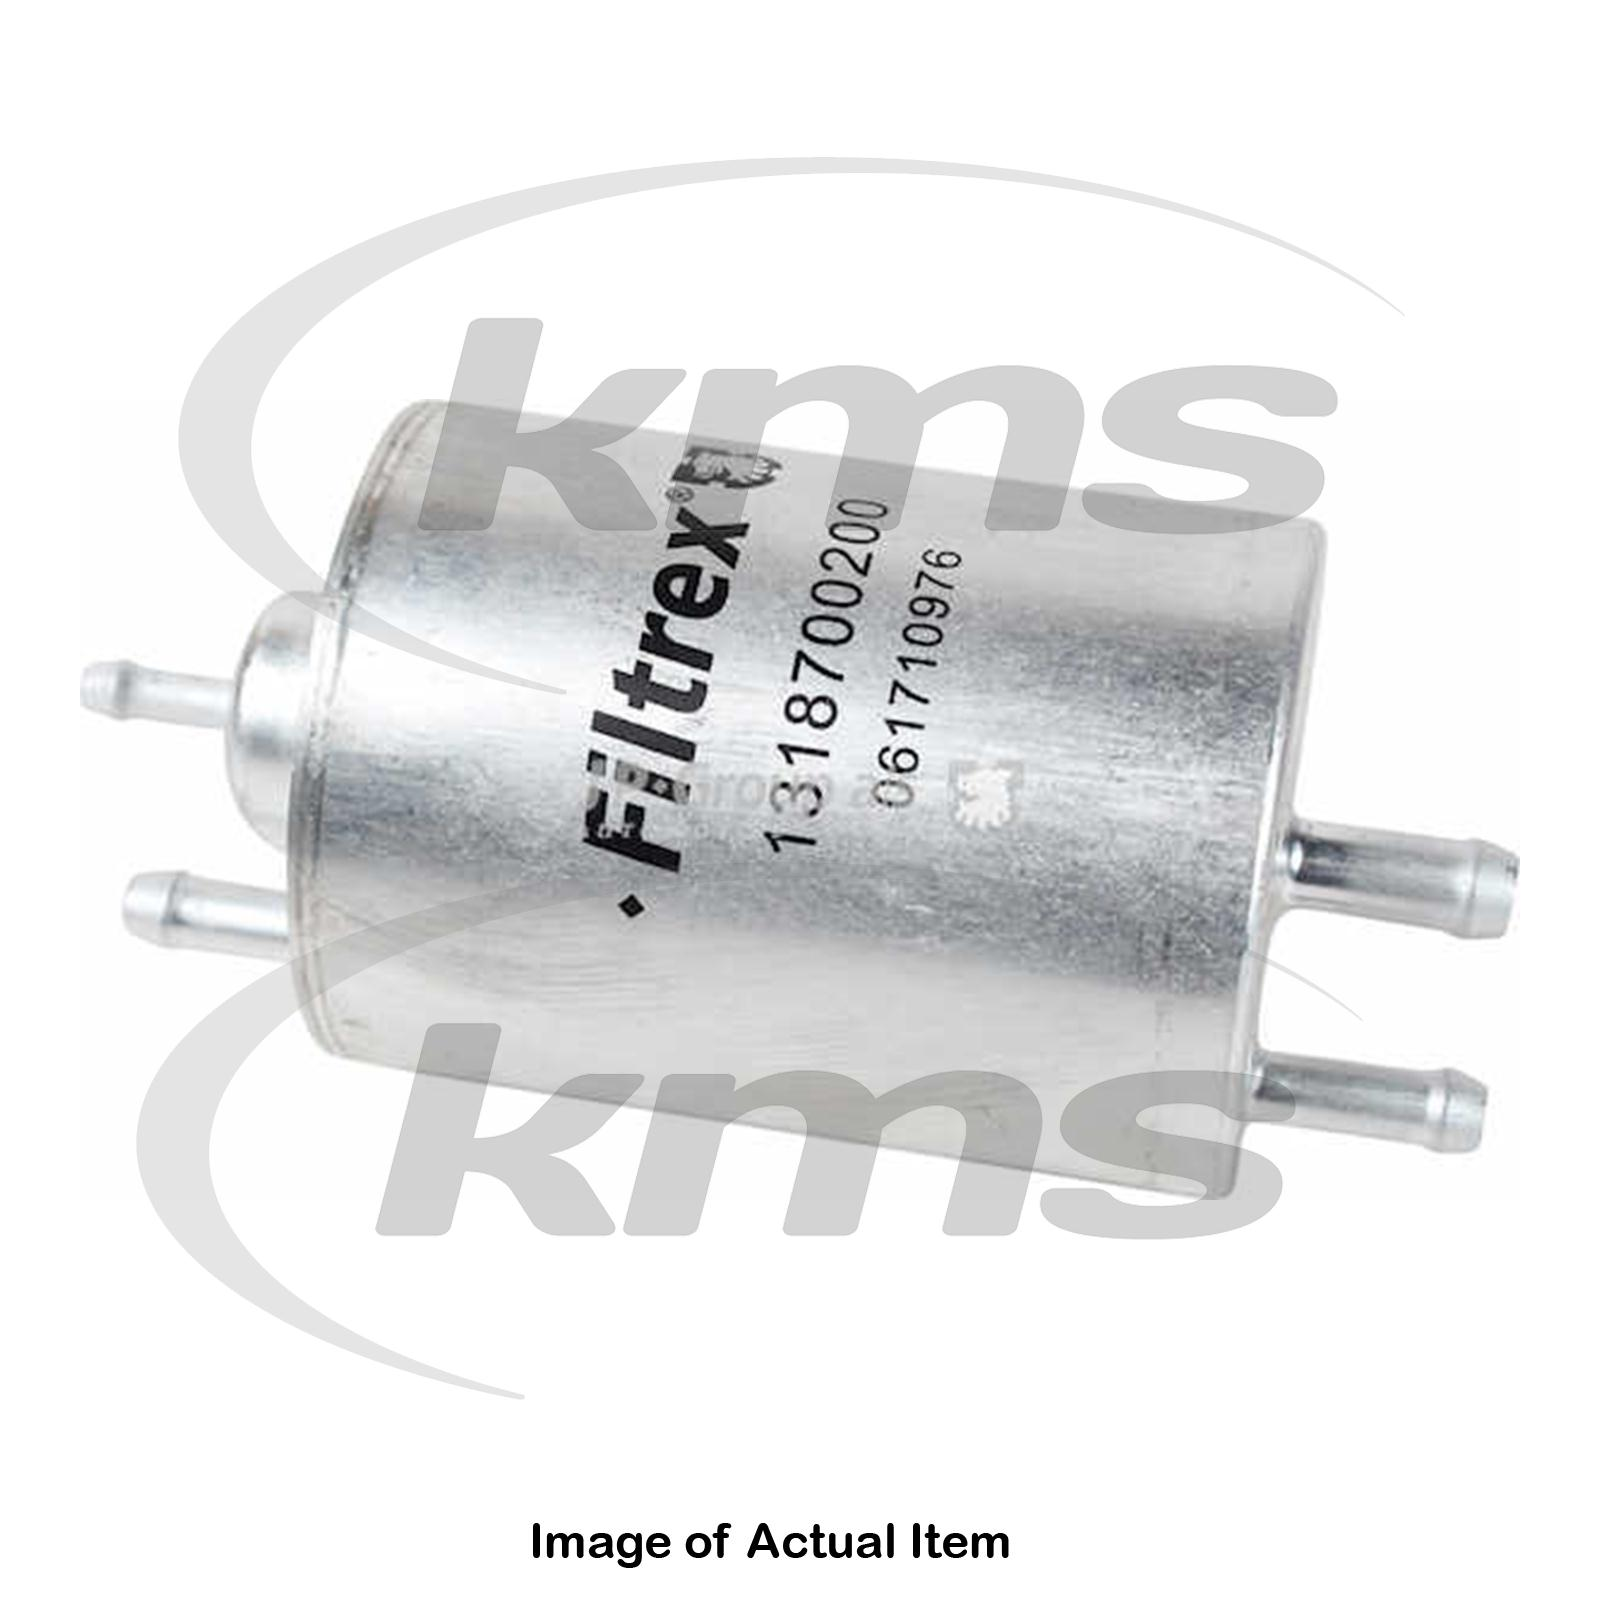 New Jp Group Fuel Filter 1318700200 Top Quality 5710412044565 Ebay 2005 Mercedes Benz Location Sentinel